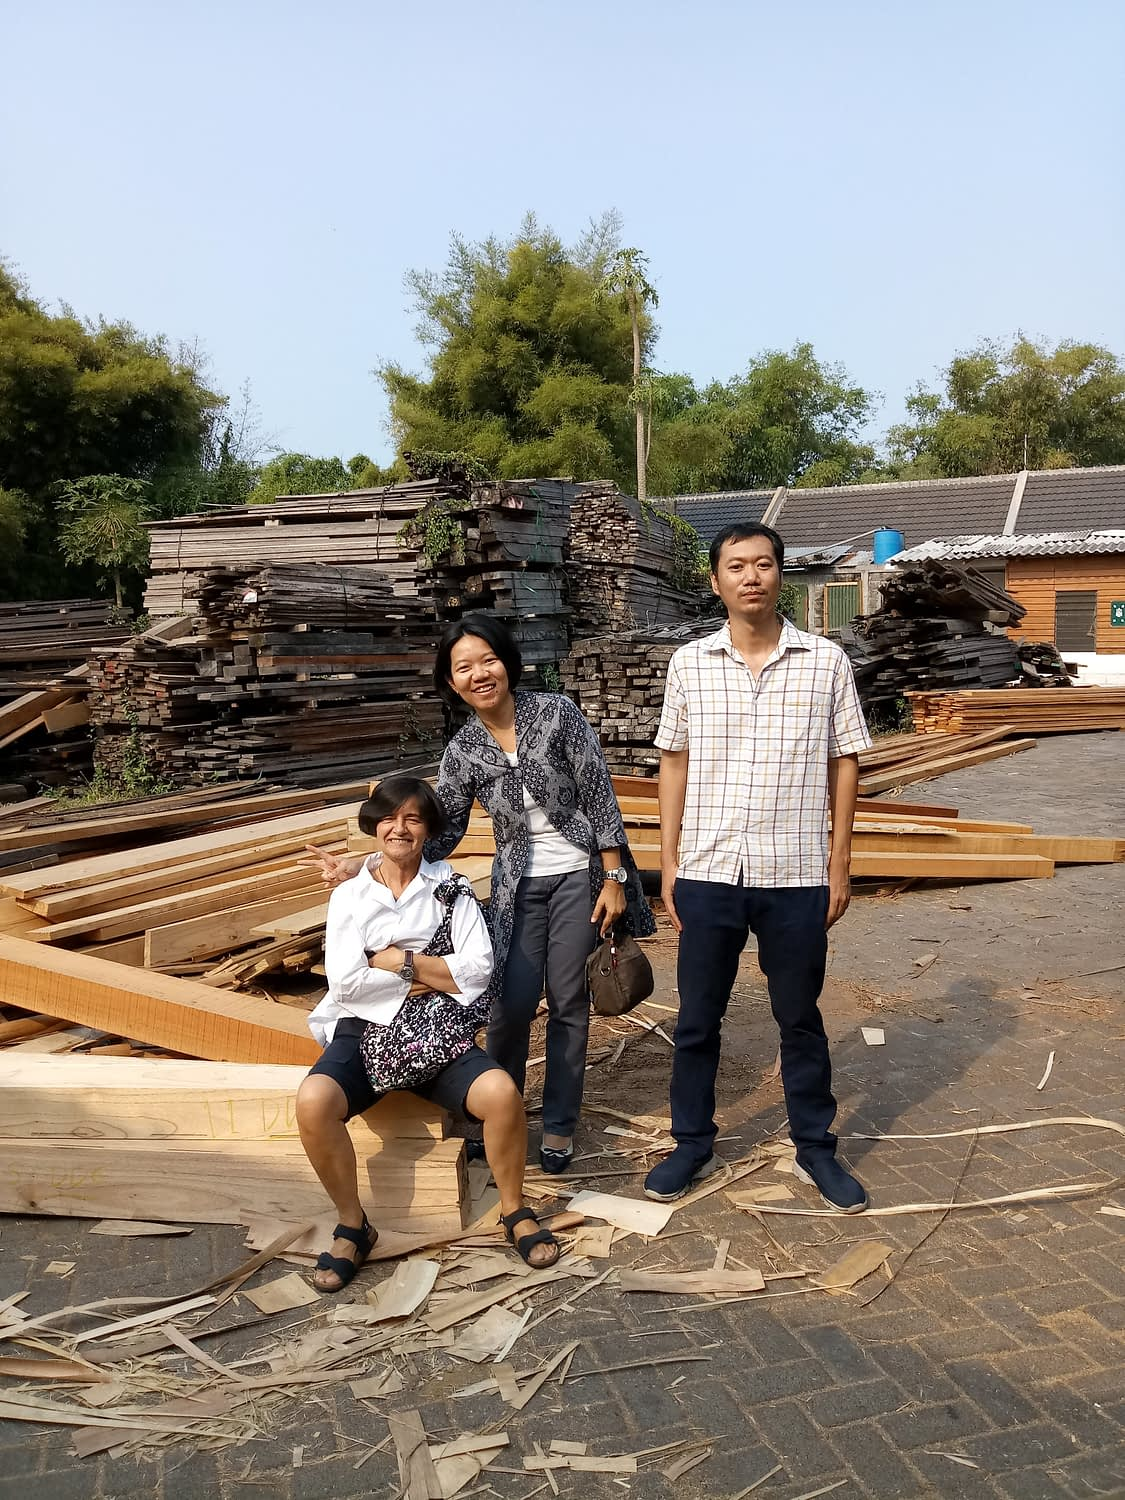 Marina exploring the sawmill and discussing a sustainable new product.